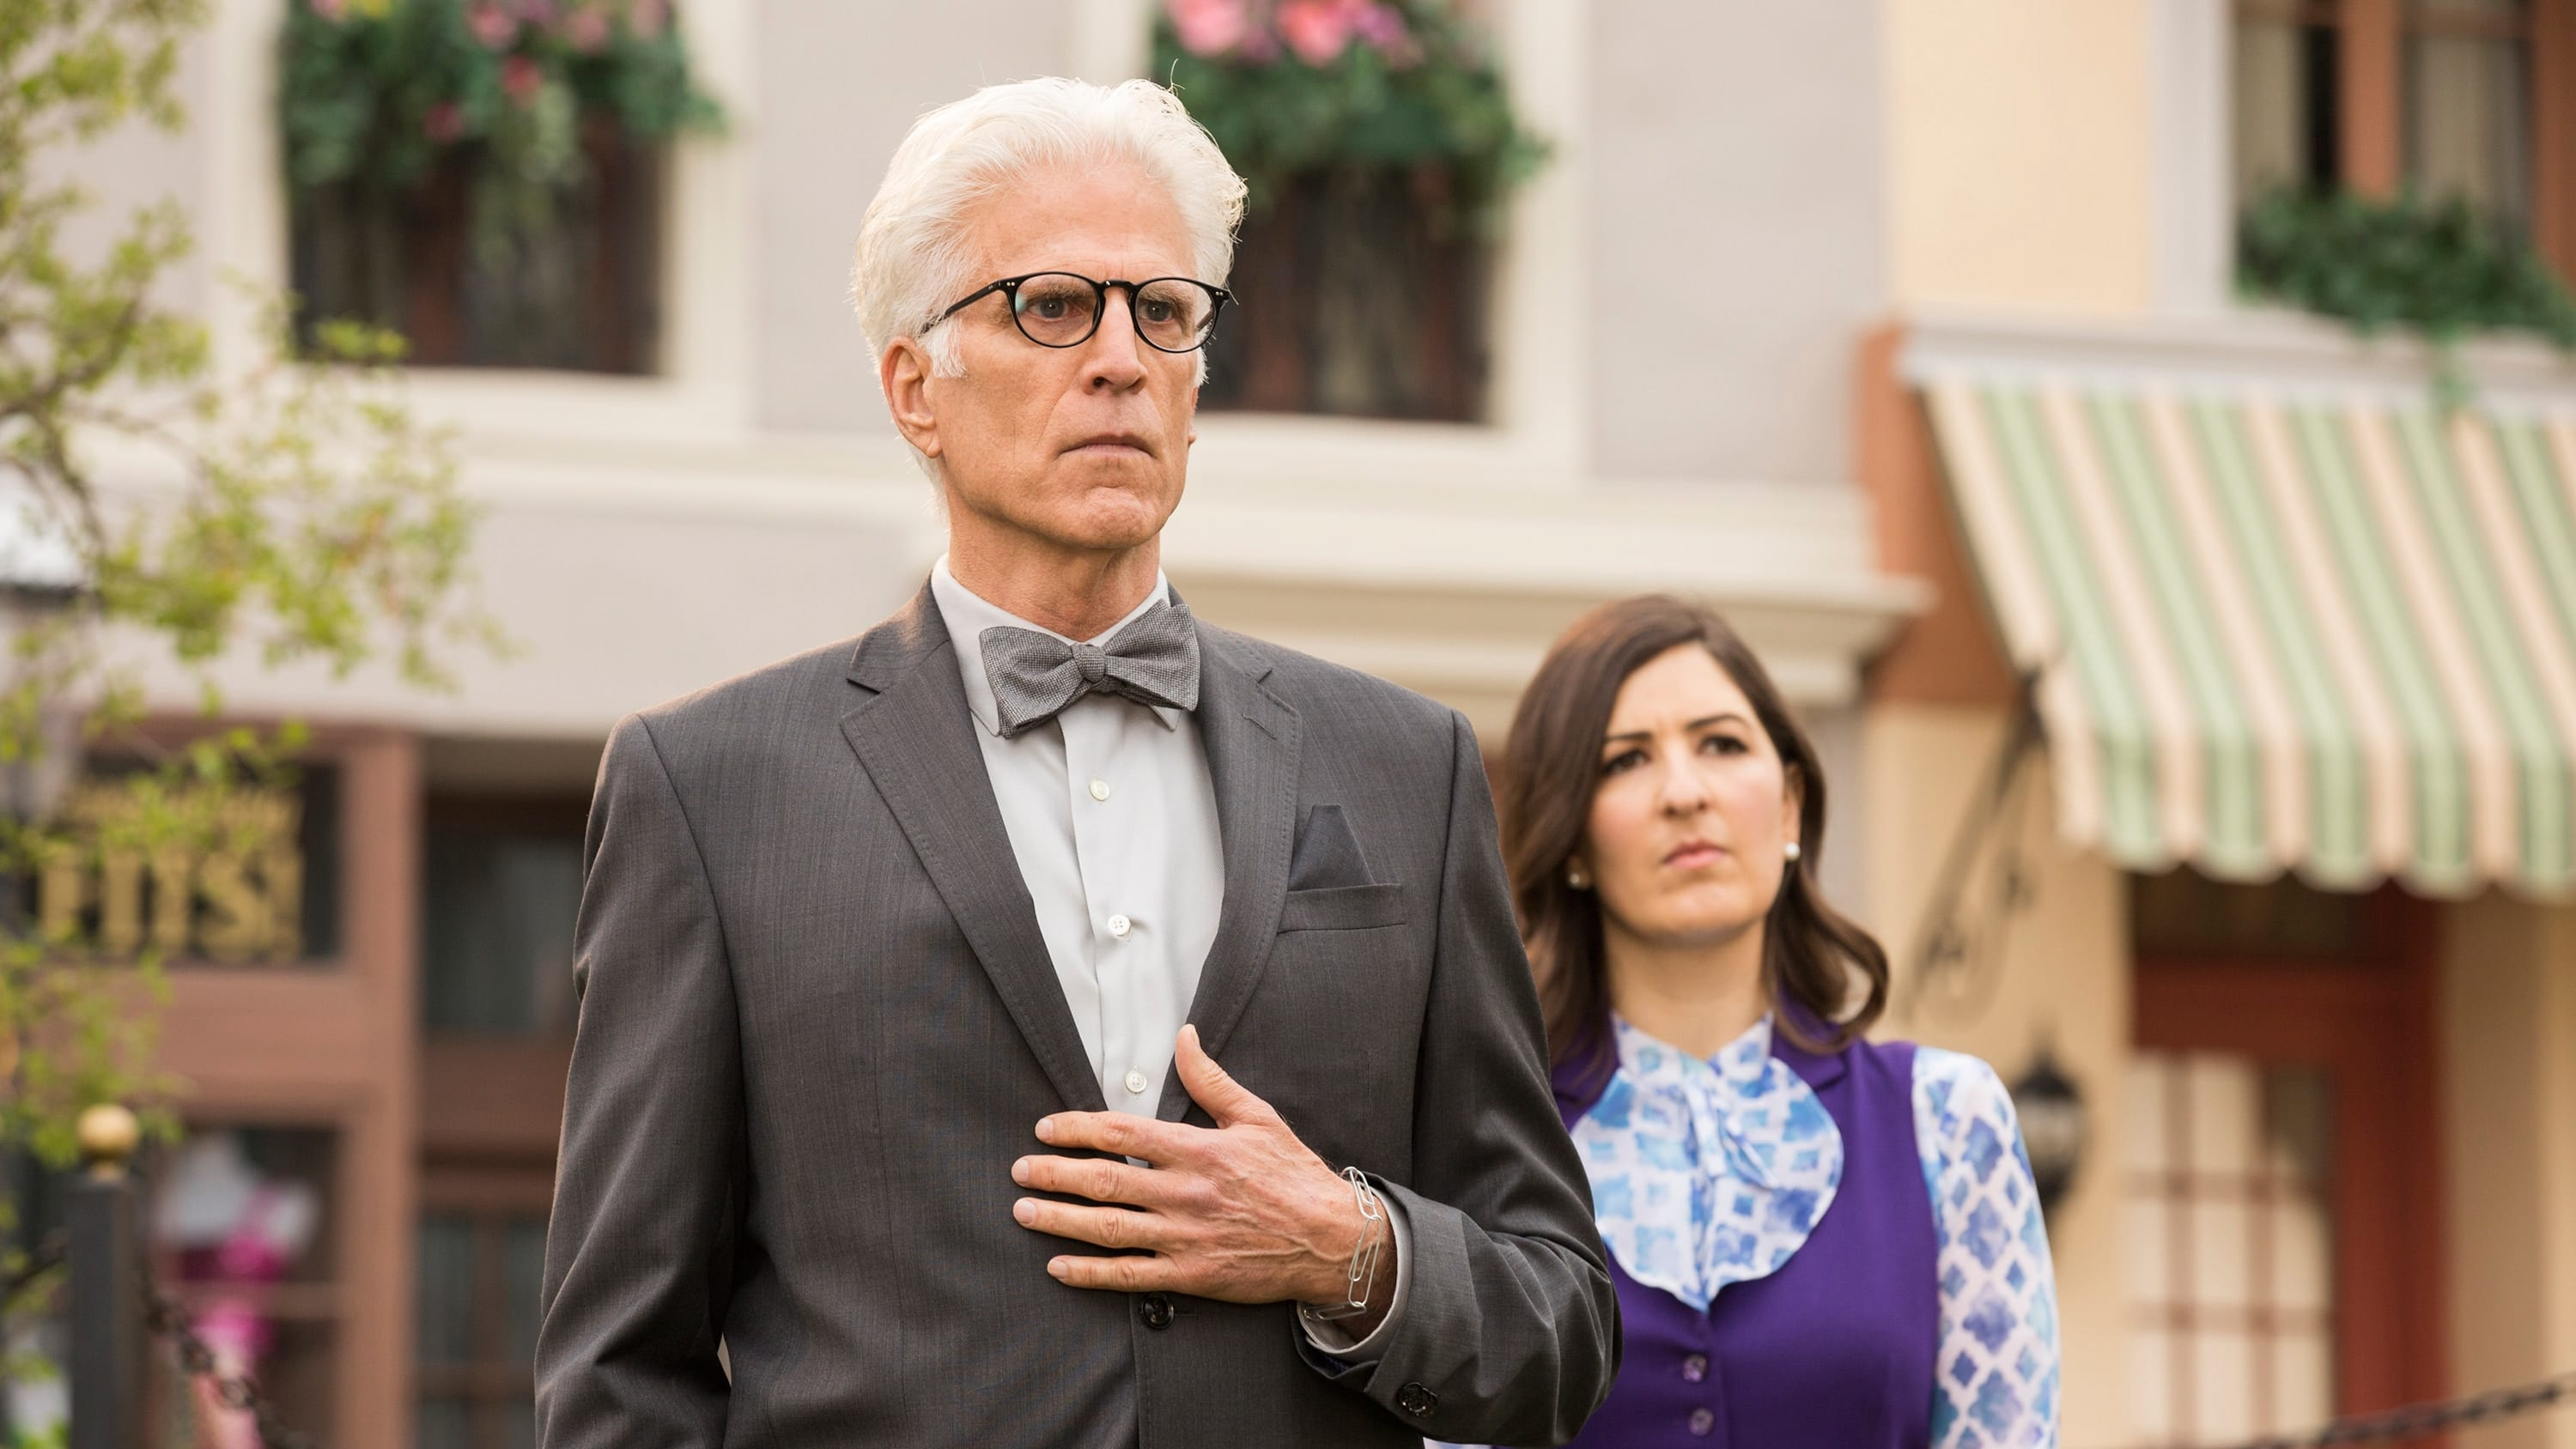 The Good Place - Season 1 Episode 6 : What We Owe to Each Other